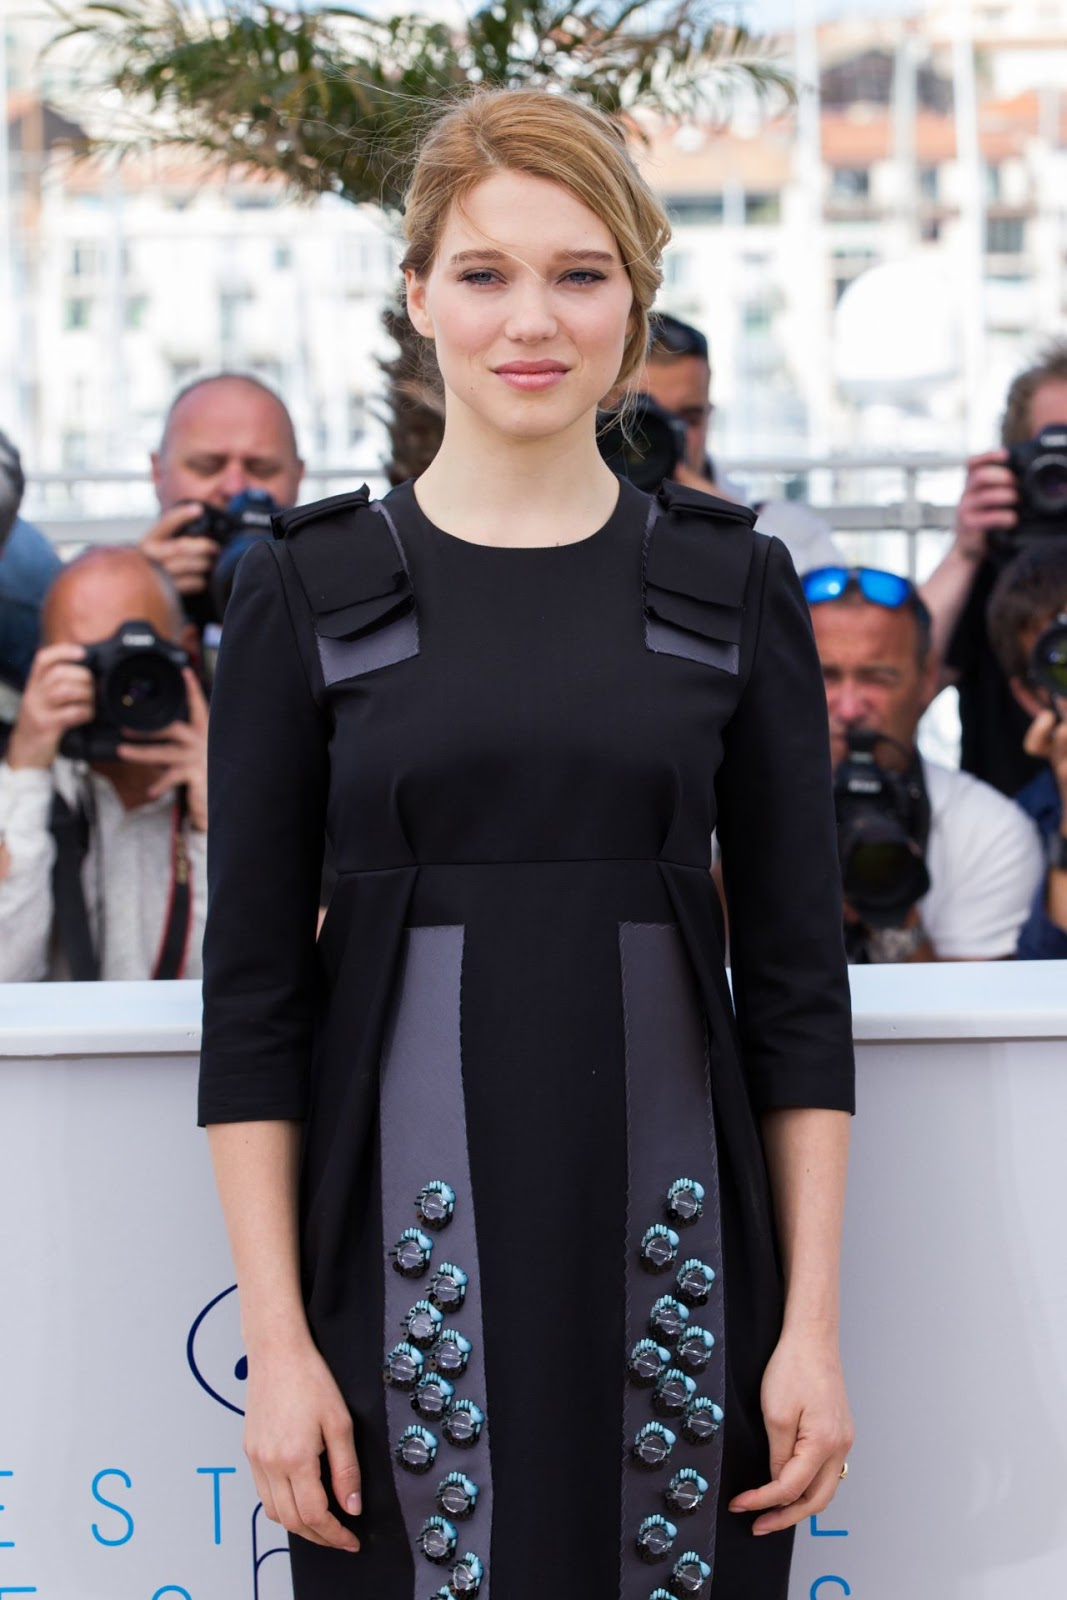 Full HQ Wallpapers of Lea Seydoux The Lobster Photocall At 2015 Cannes Film Festival